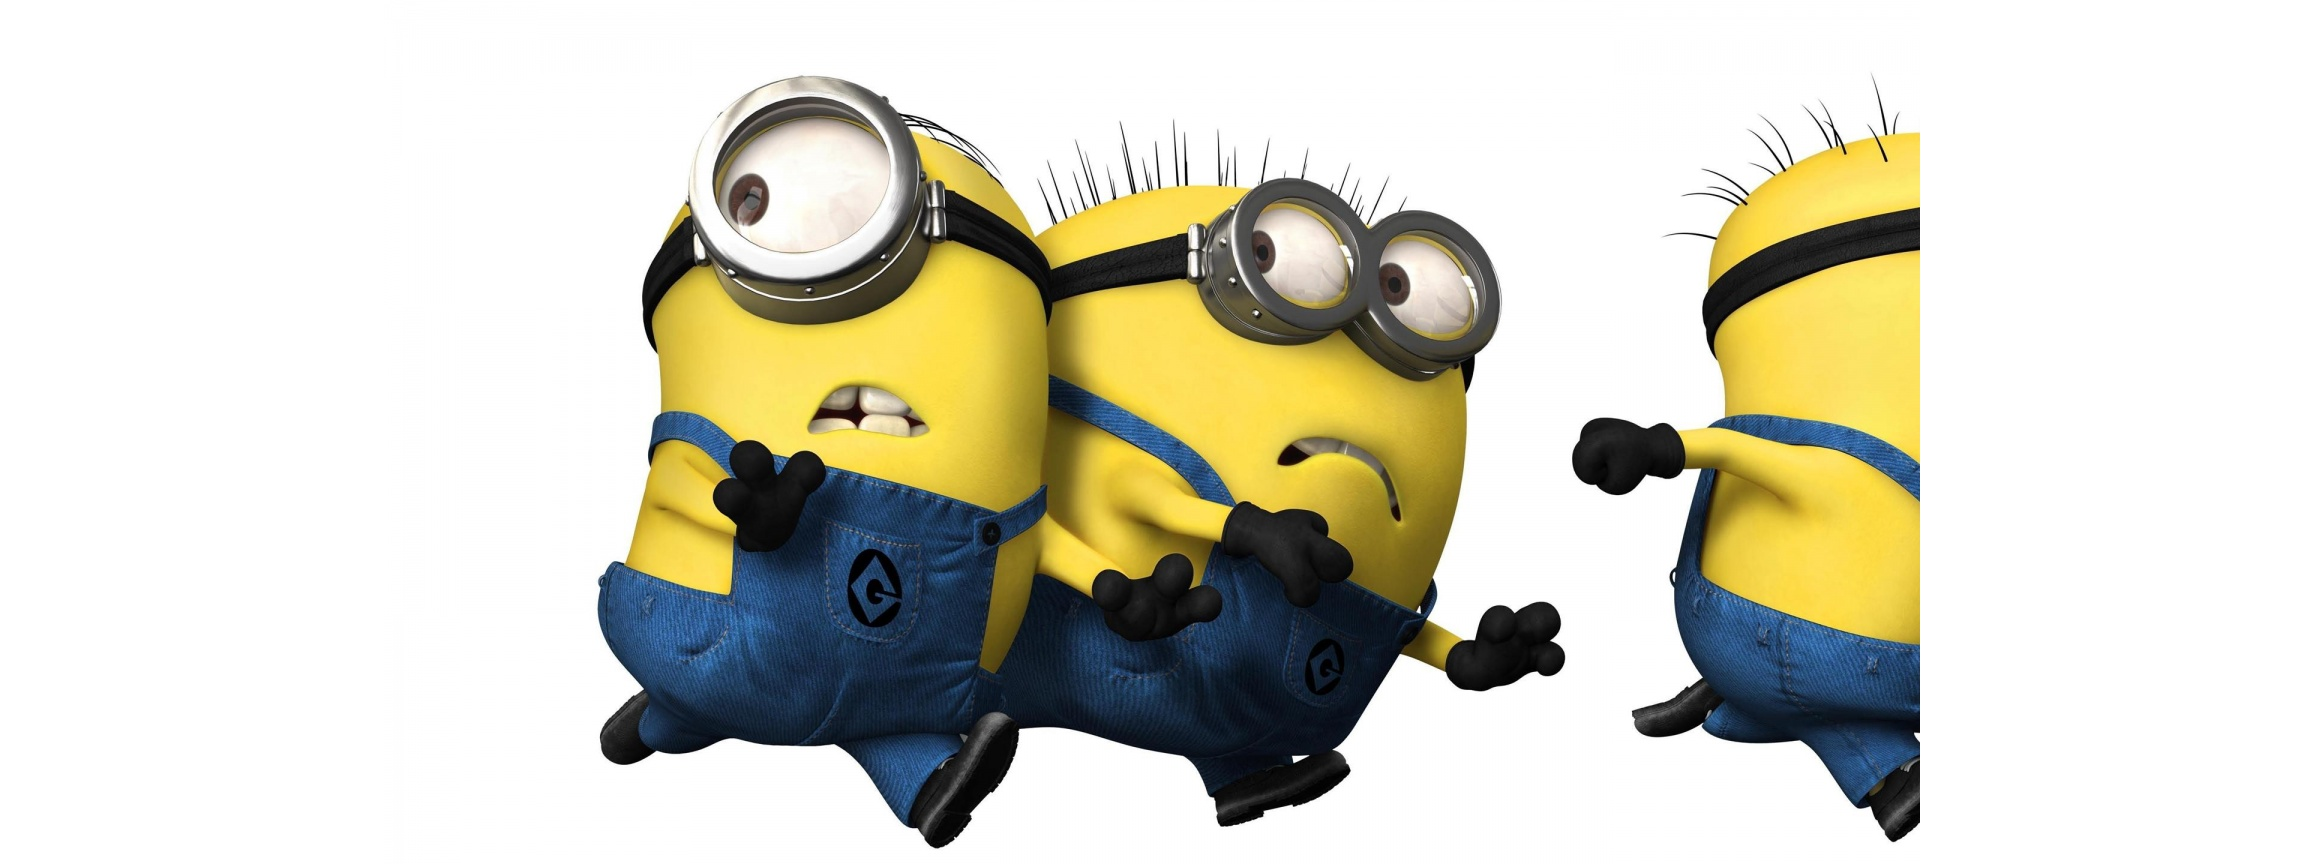 Selected Resoloution 2304x864 wallpaper hd minions Size 282293 2304x864